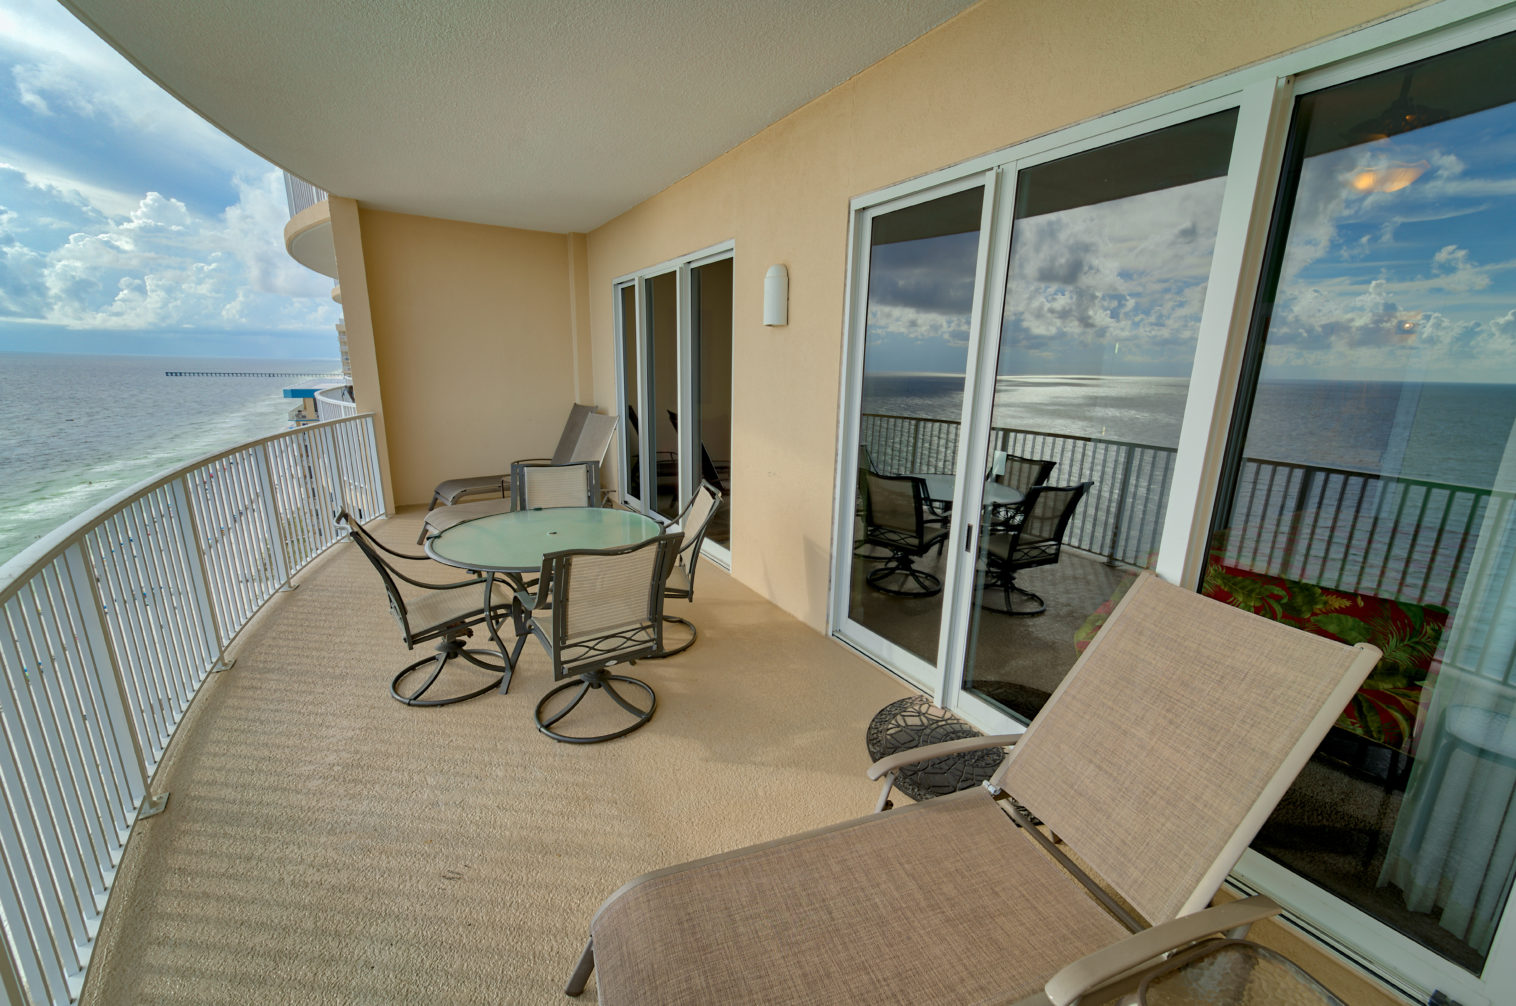 Condo Rental Panama City Beach Florida